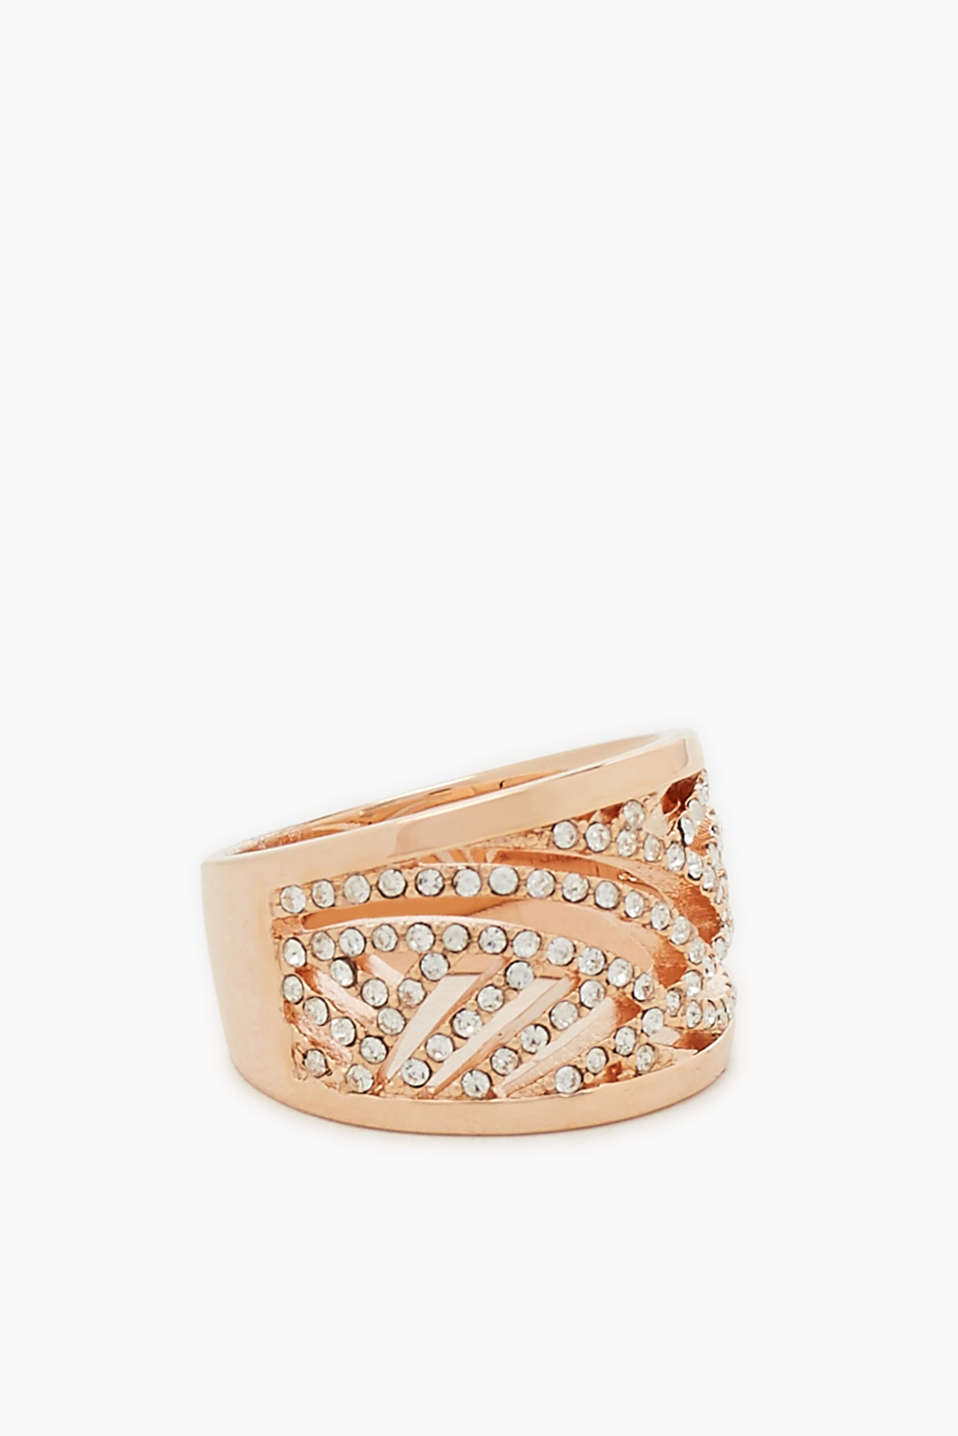 Ring made of a high-quality metal alloy with 18-carat rose gold plating set with sparkling zirconia